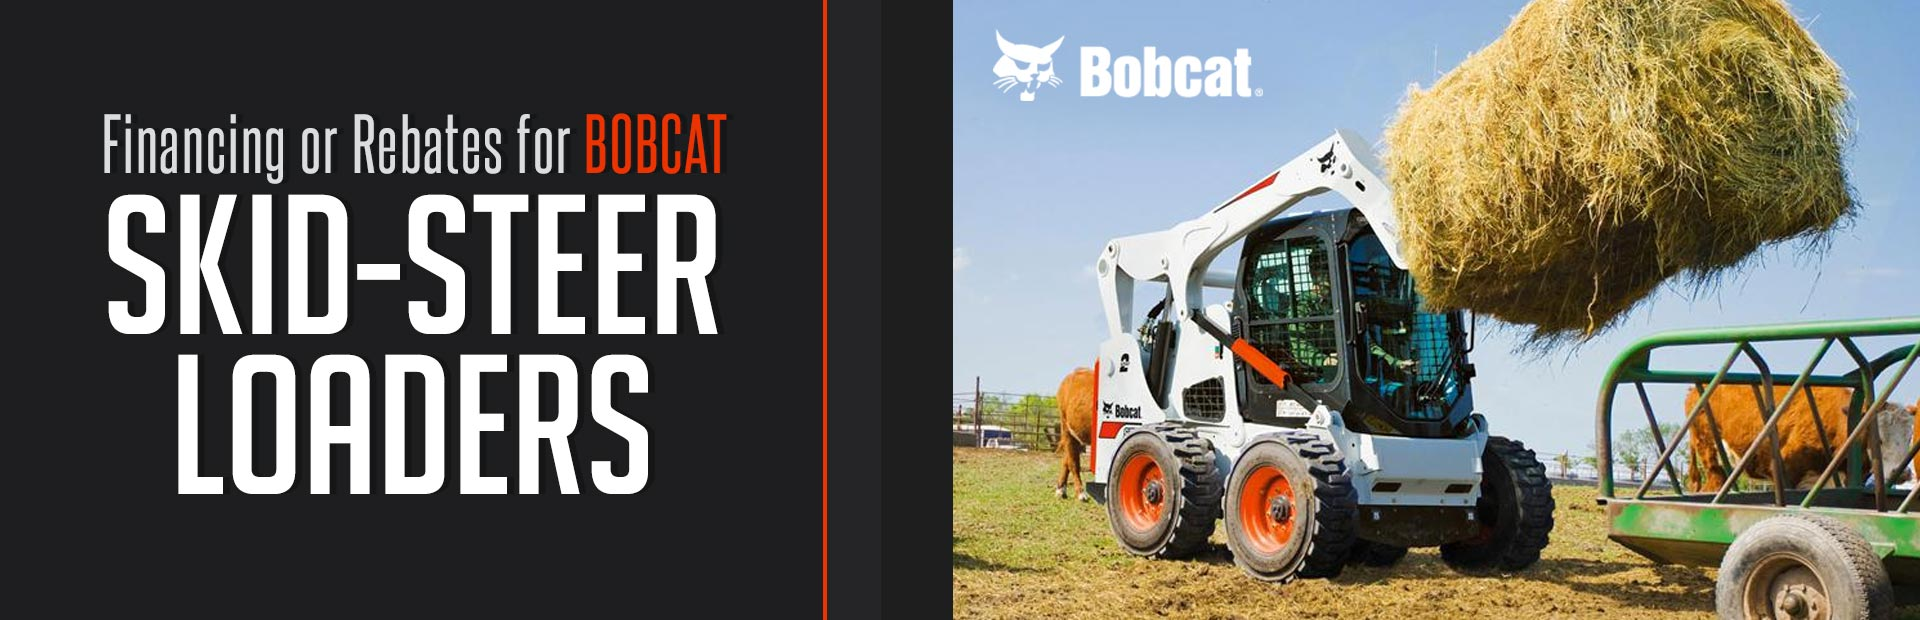 Bobcat: Financing or Rebates for Bobcat Skid-Steer Loaders